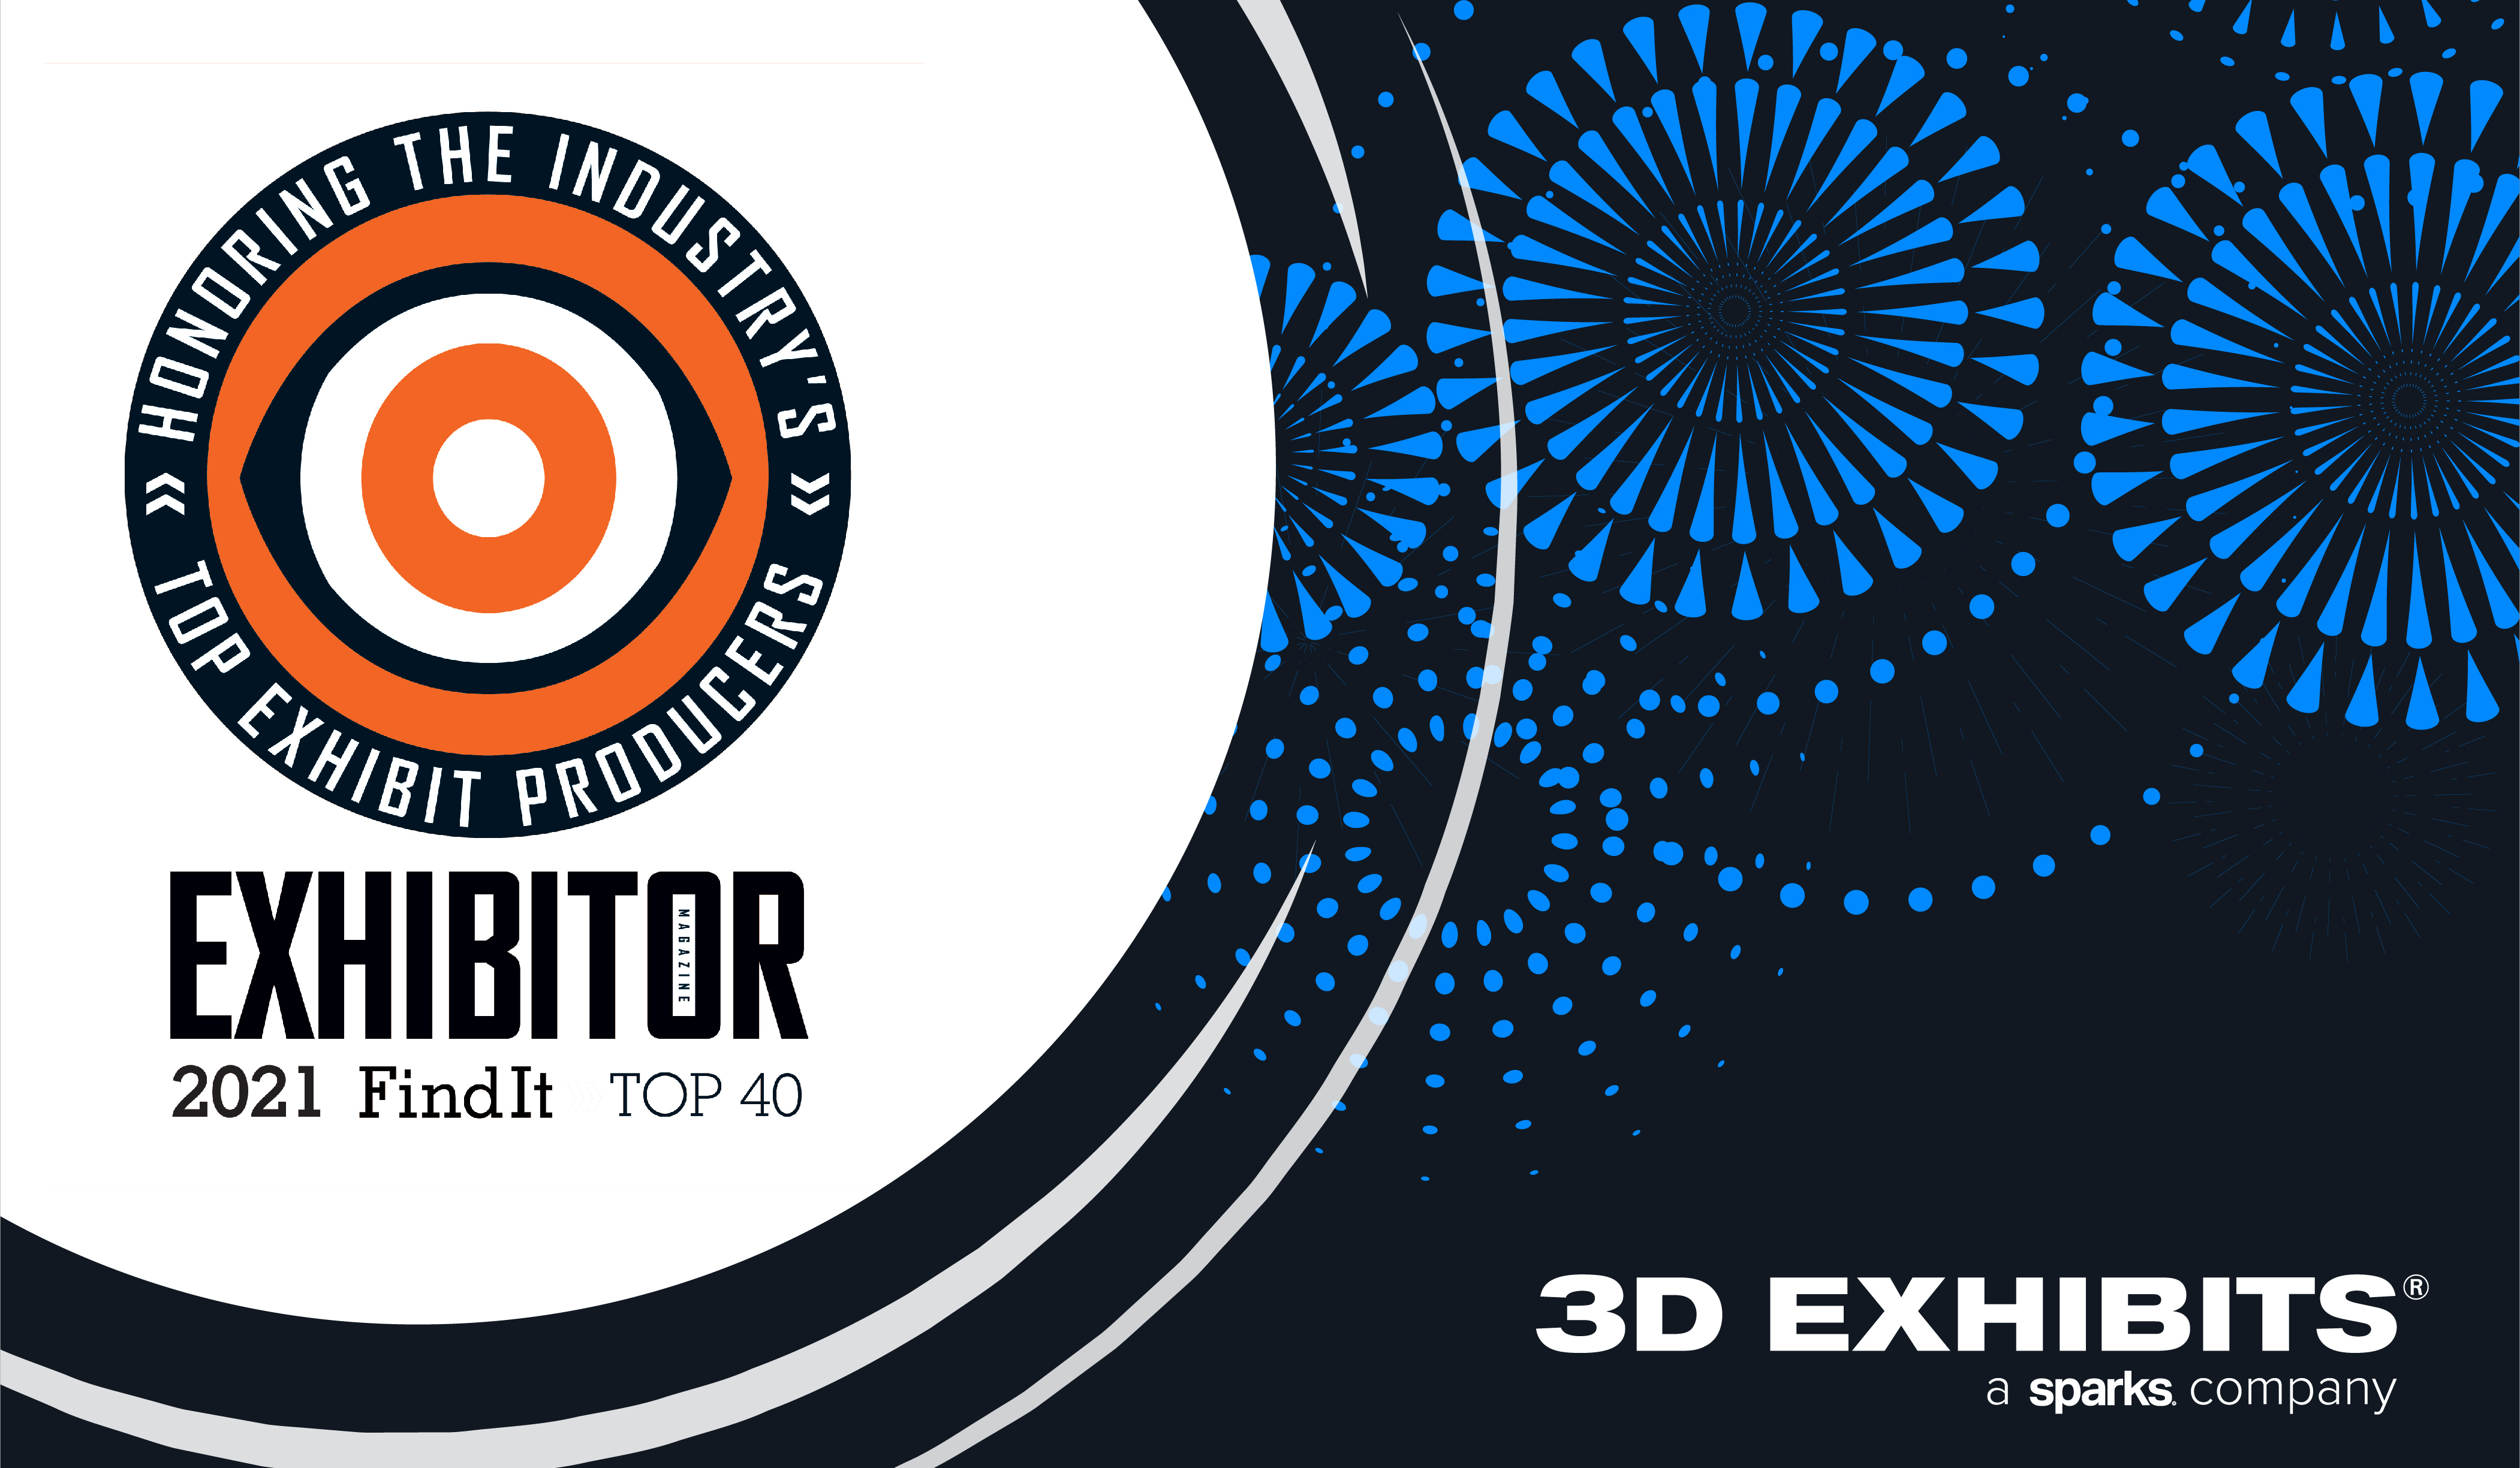 3D Exhibits named to Exhibitor's 2021 Find It Top 40